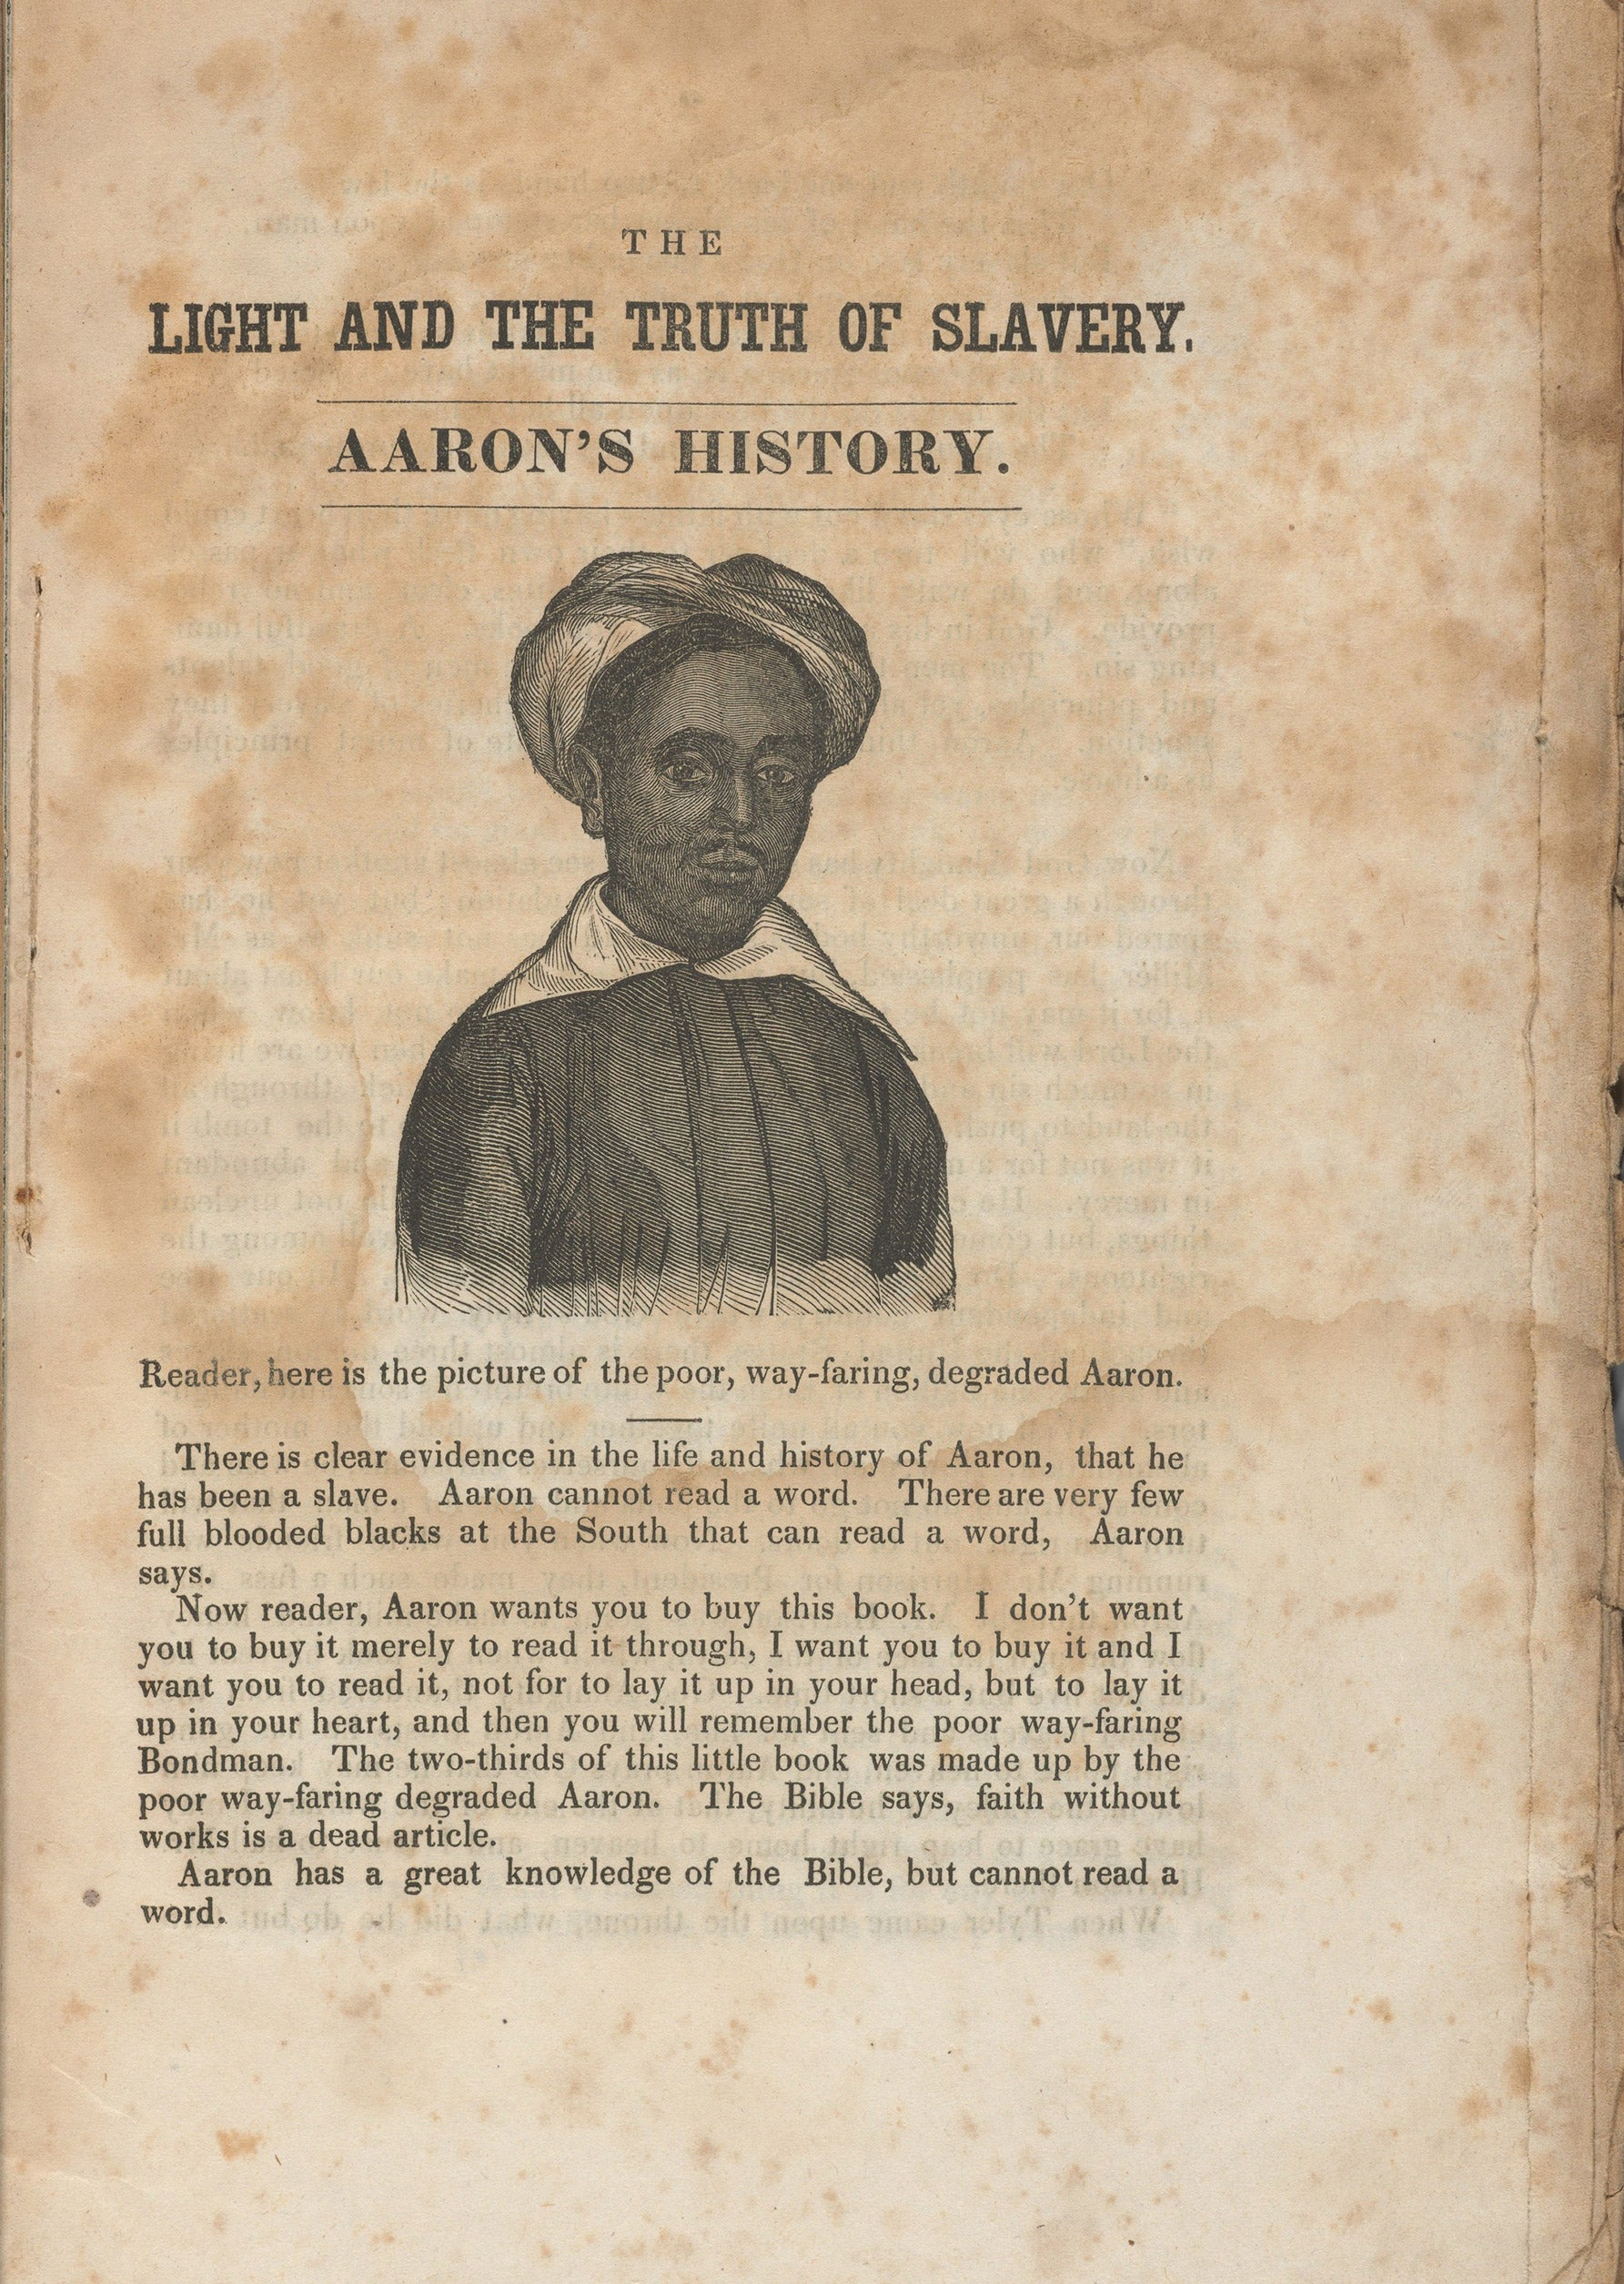 Photos of anti-slavery newspapers, taken by Dorothy Berry as she preps materials for digitization.